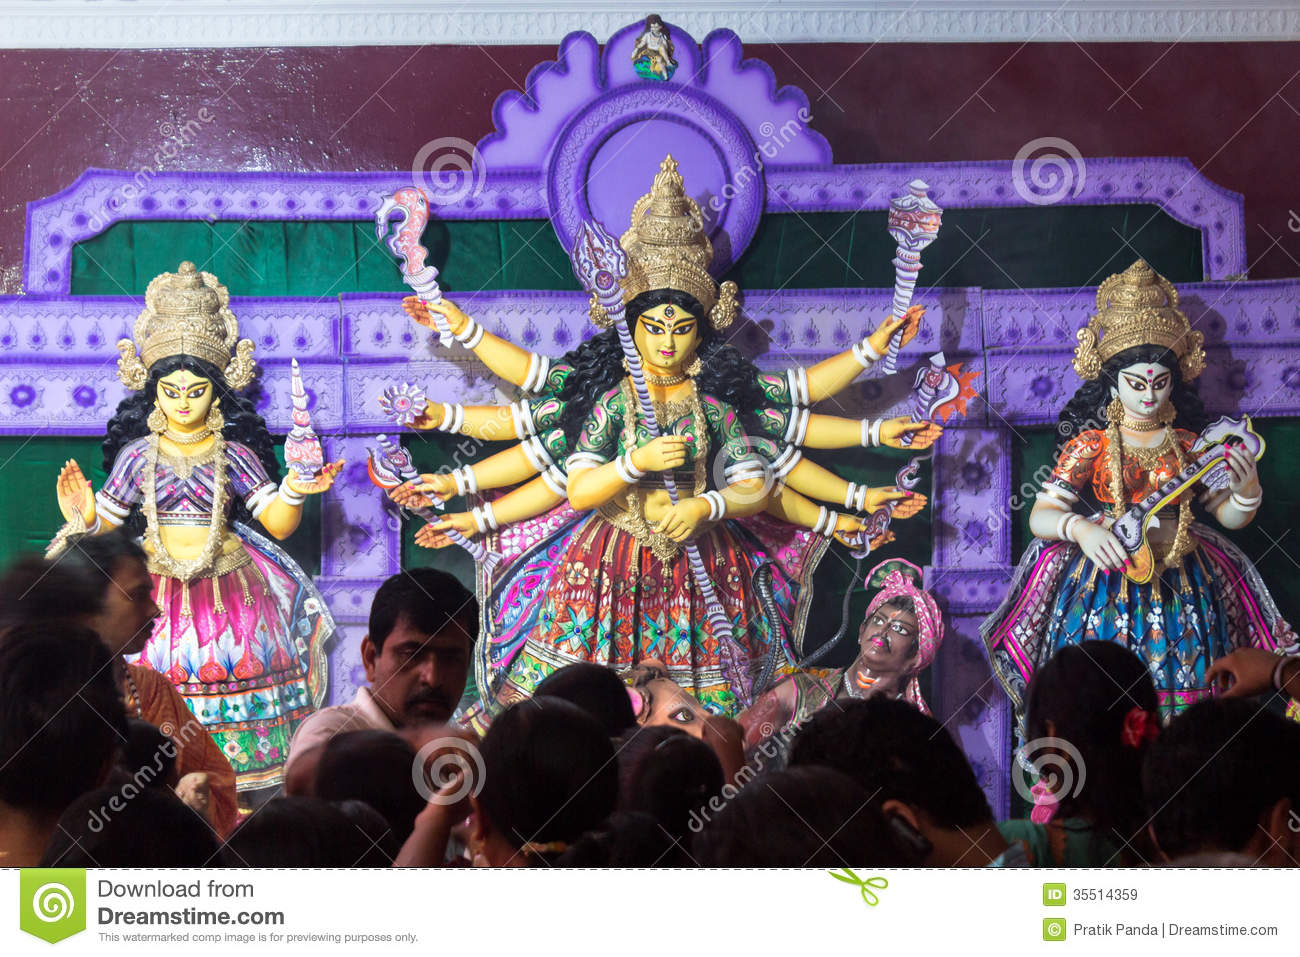 an analysis of the worship of durga in india Ban on durga puja: an assault on the core of hindu civilisation [part iv] this piece has been co-authored by shanmukh, saswati sarkar and dikgaj.